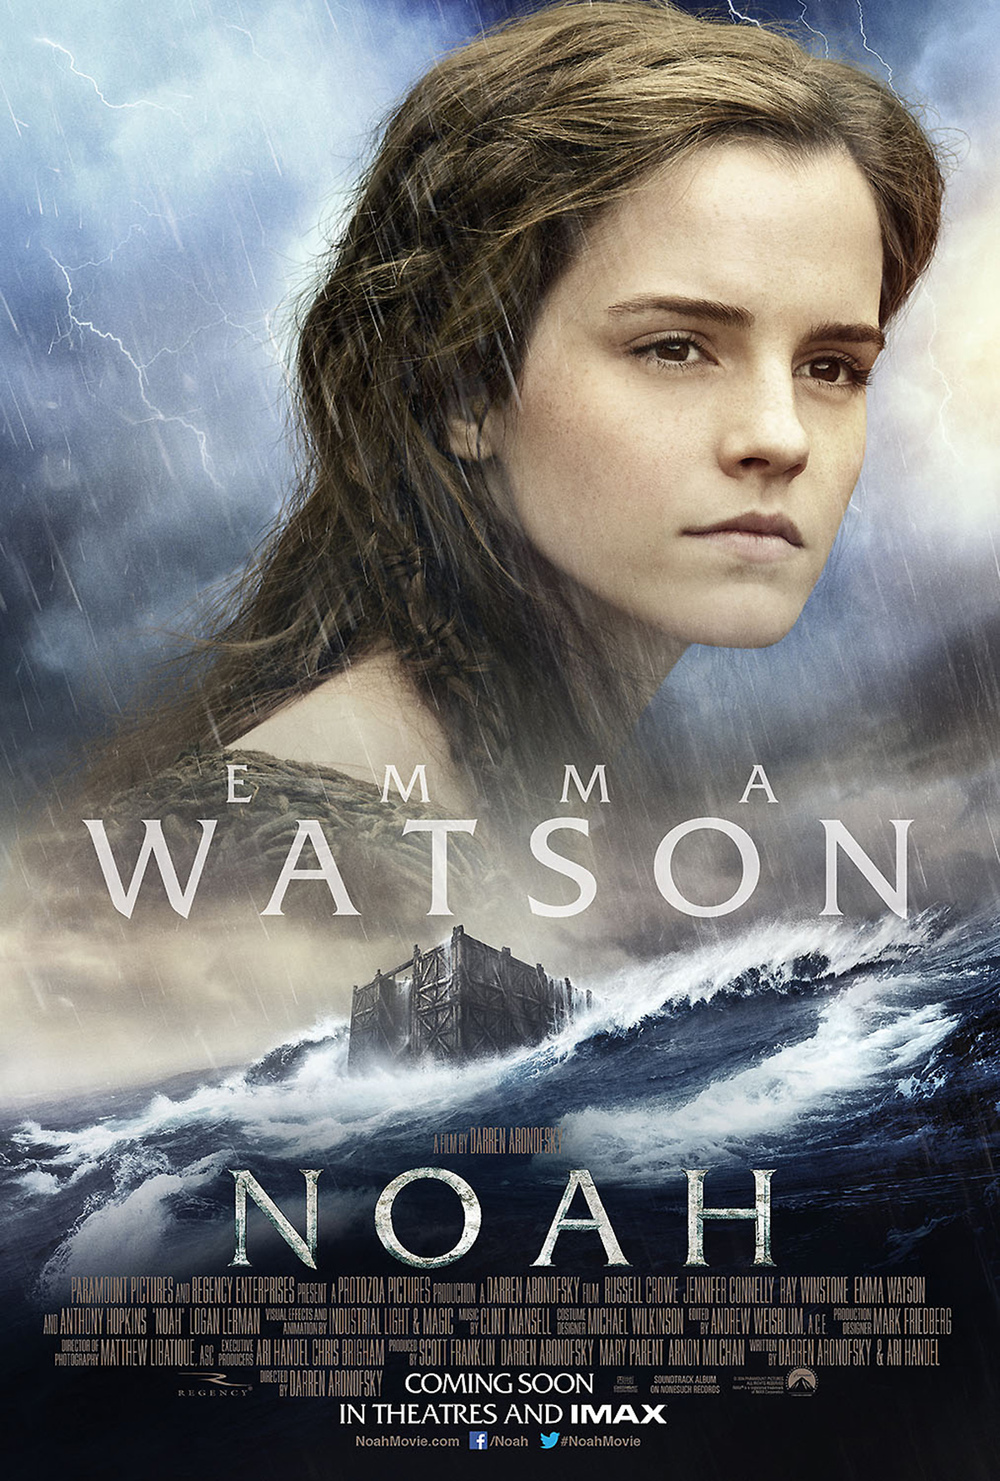 "<a href=""http://www.totallyemmawatson.com/gallery/acting-career/noah/posters"">Posters</a>"